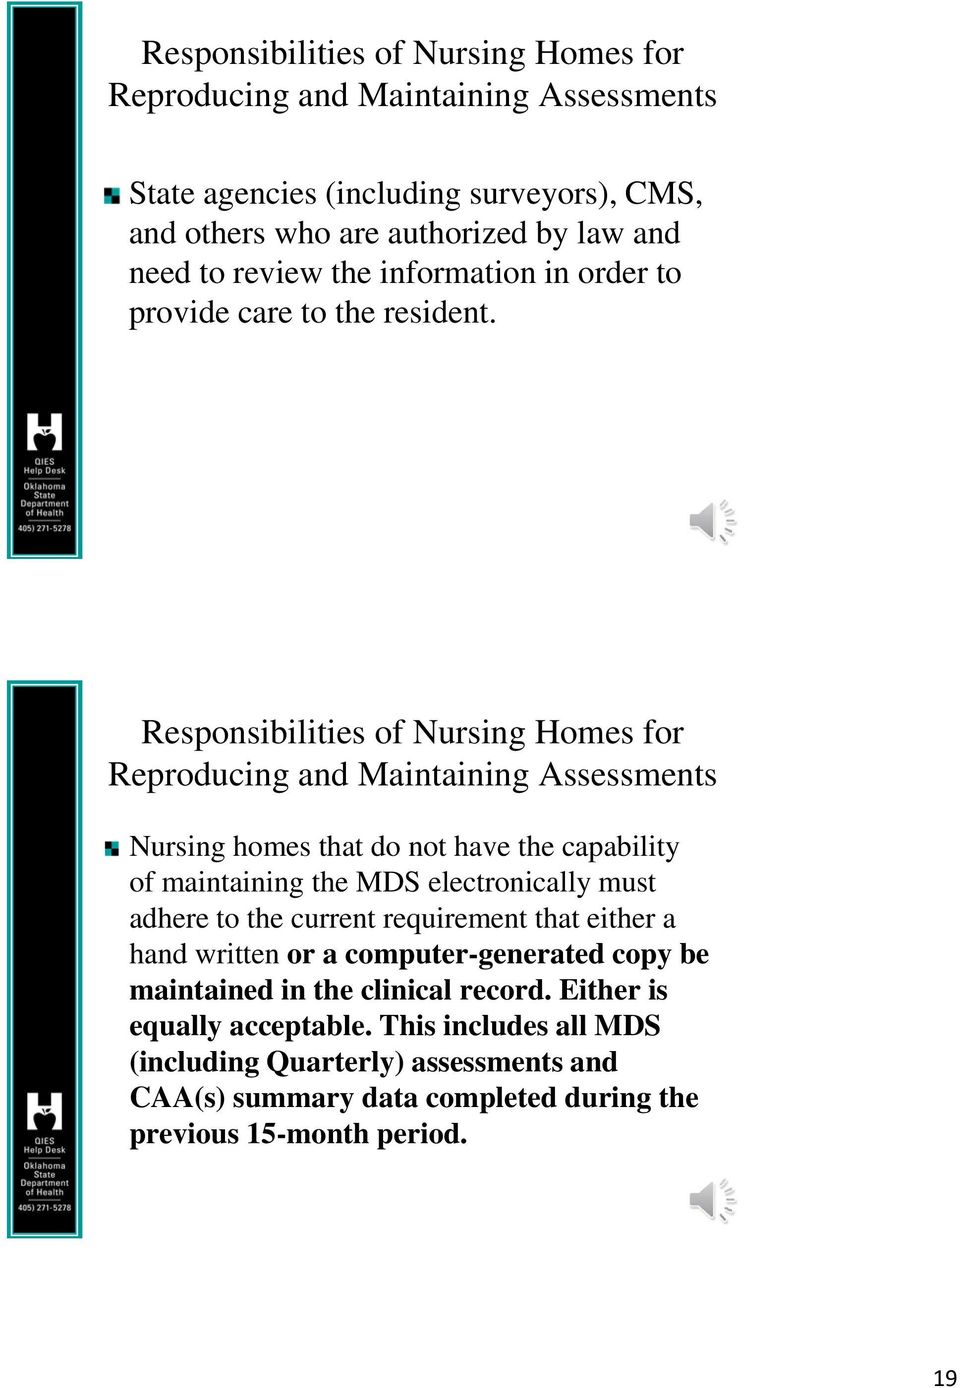 Responsibilities of Nursing Homes for Reproducing and Maintaining Assessments Nursing homes that do not have the capability of maintaining the MDS electronically must